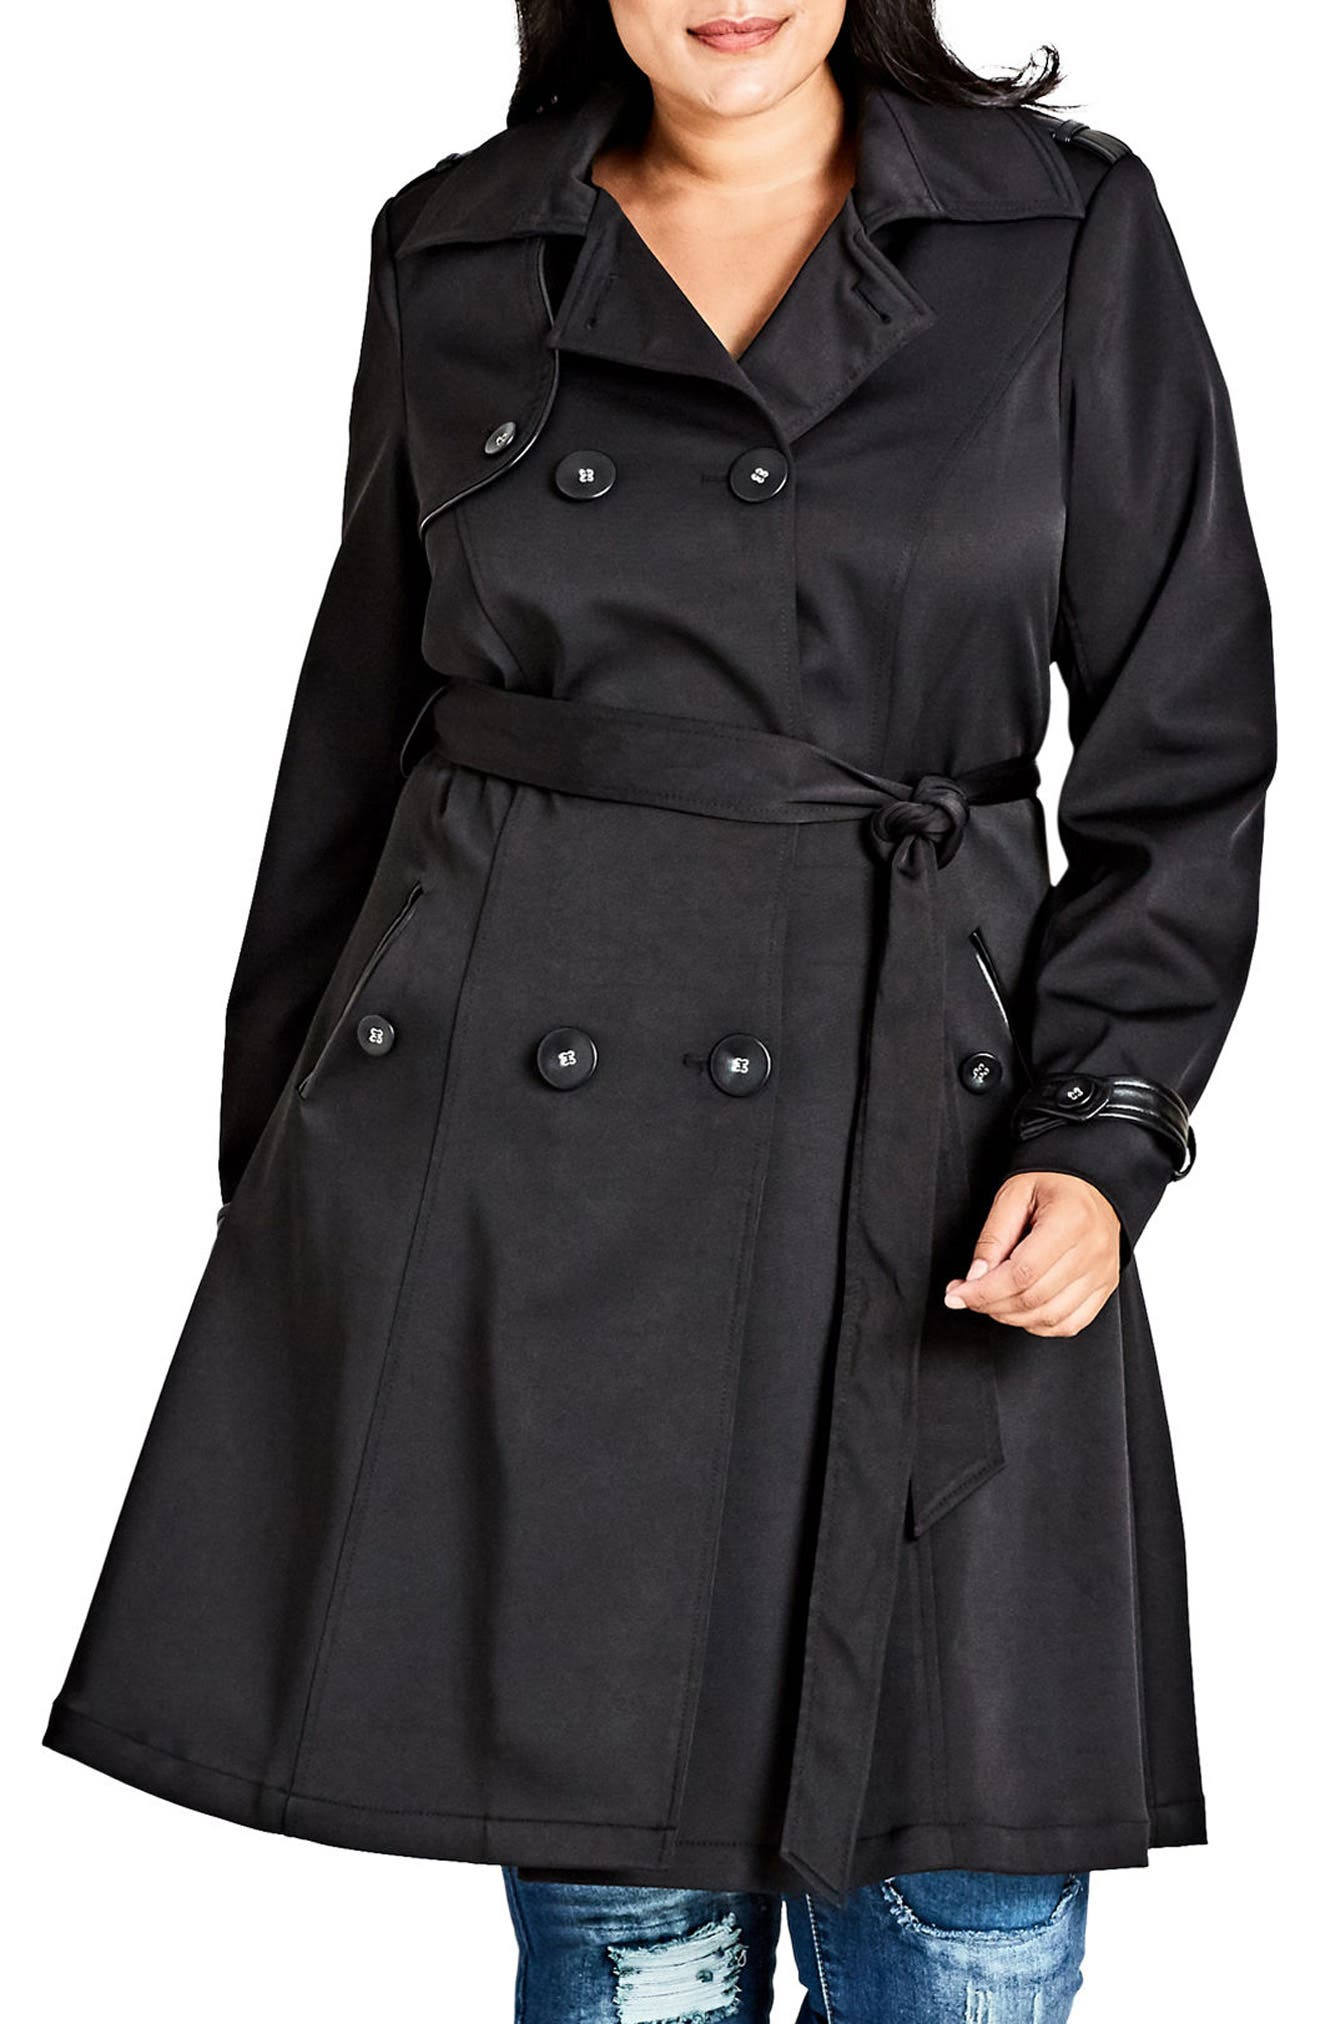 City Chic Corset Back Trench Coat